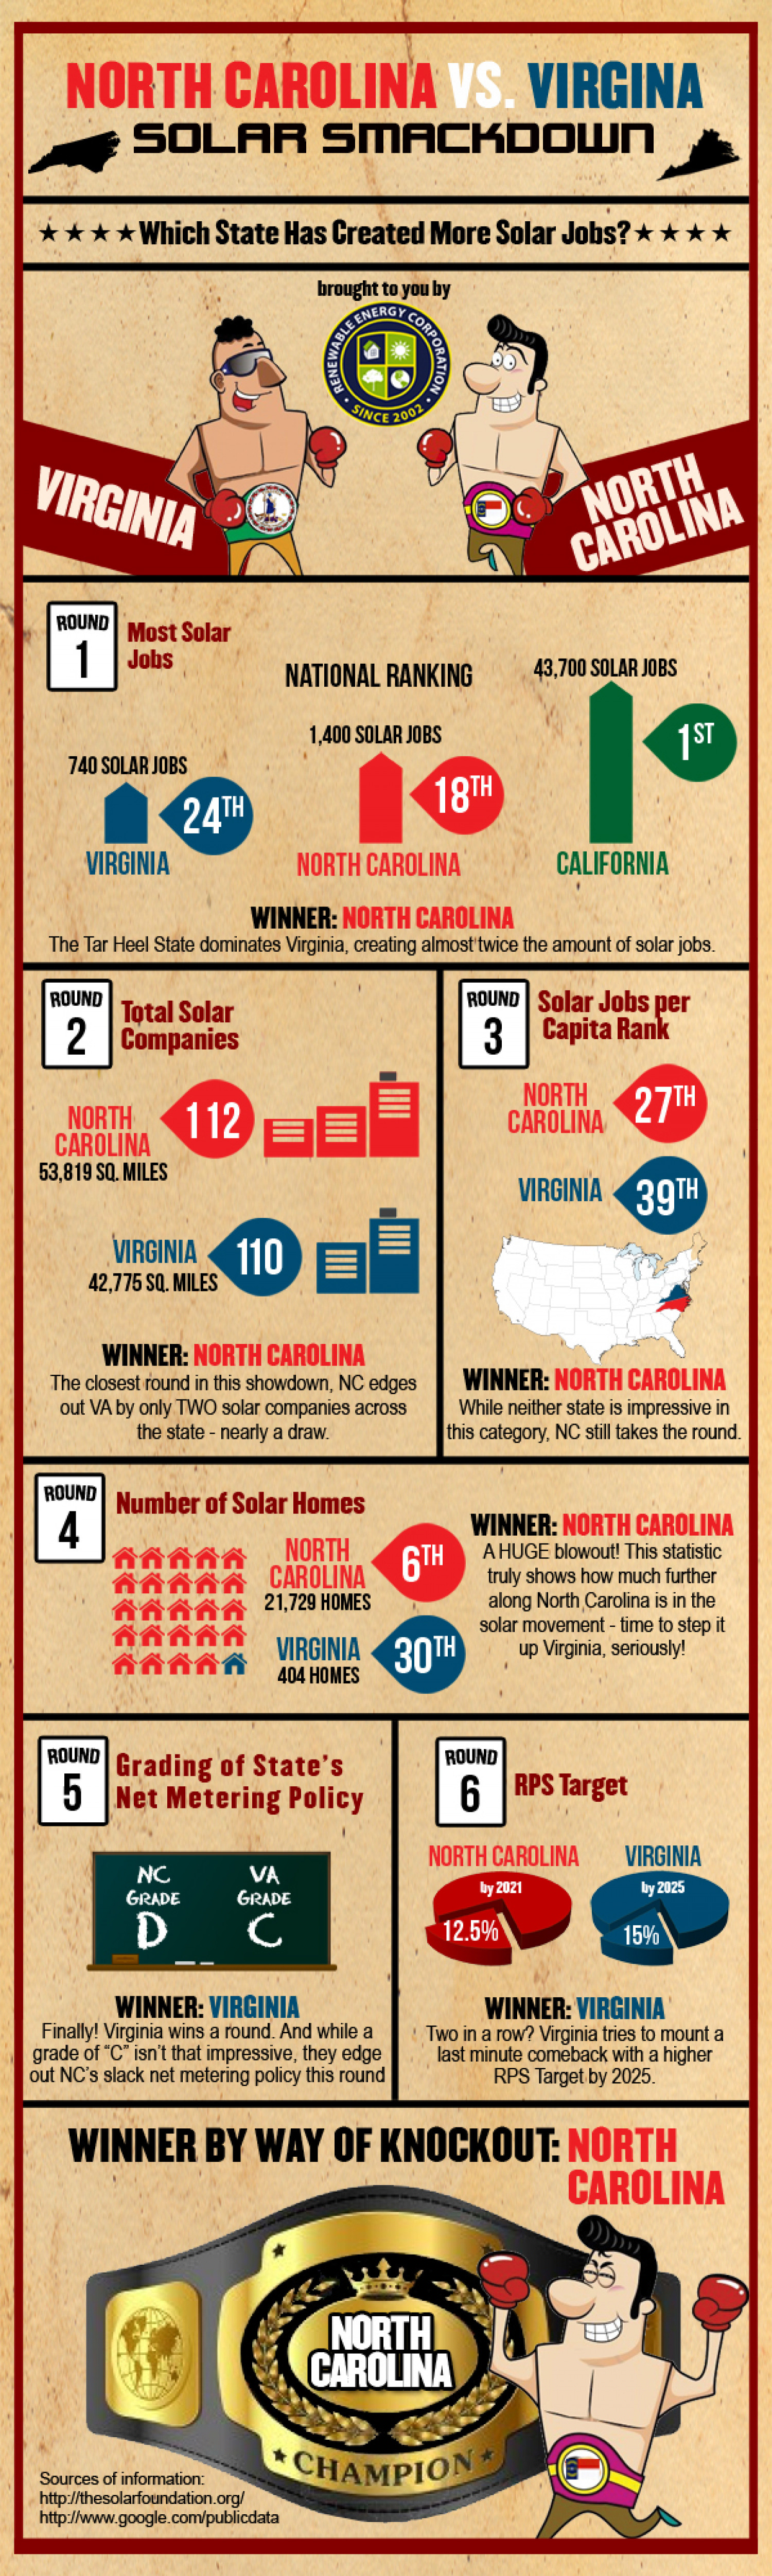 North Carolina vs. Virginia - Solar Smackdown Infographic